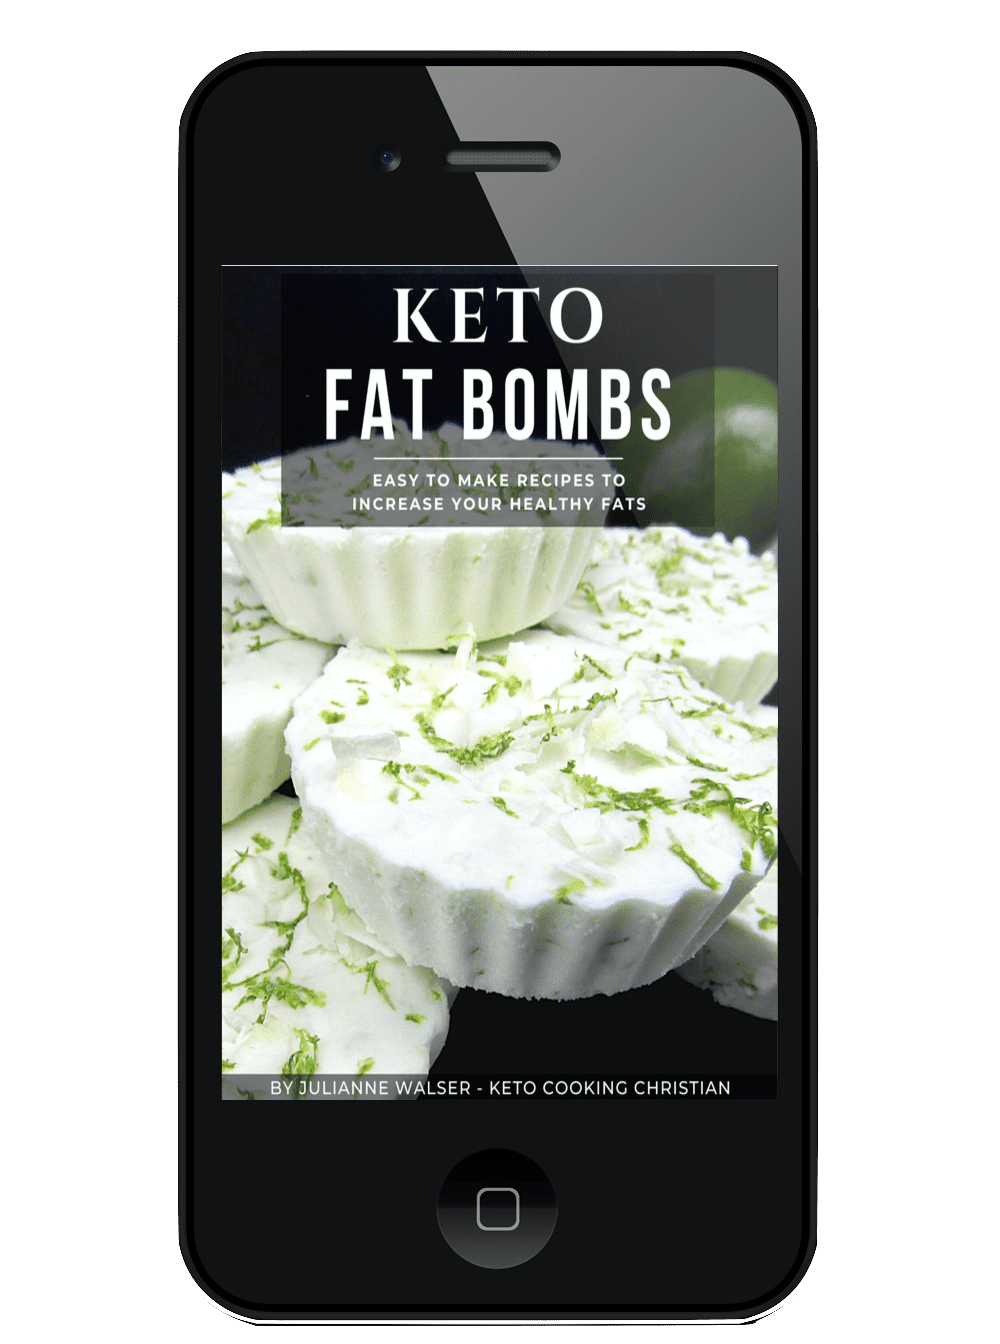 Keto Fat Bombs eBook on Mobile device